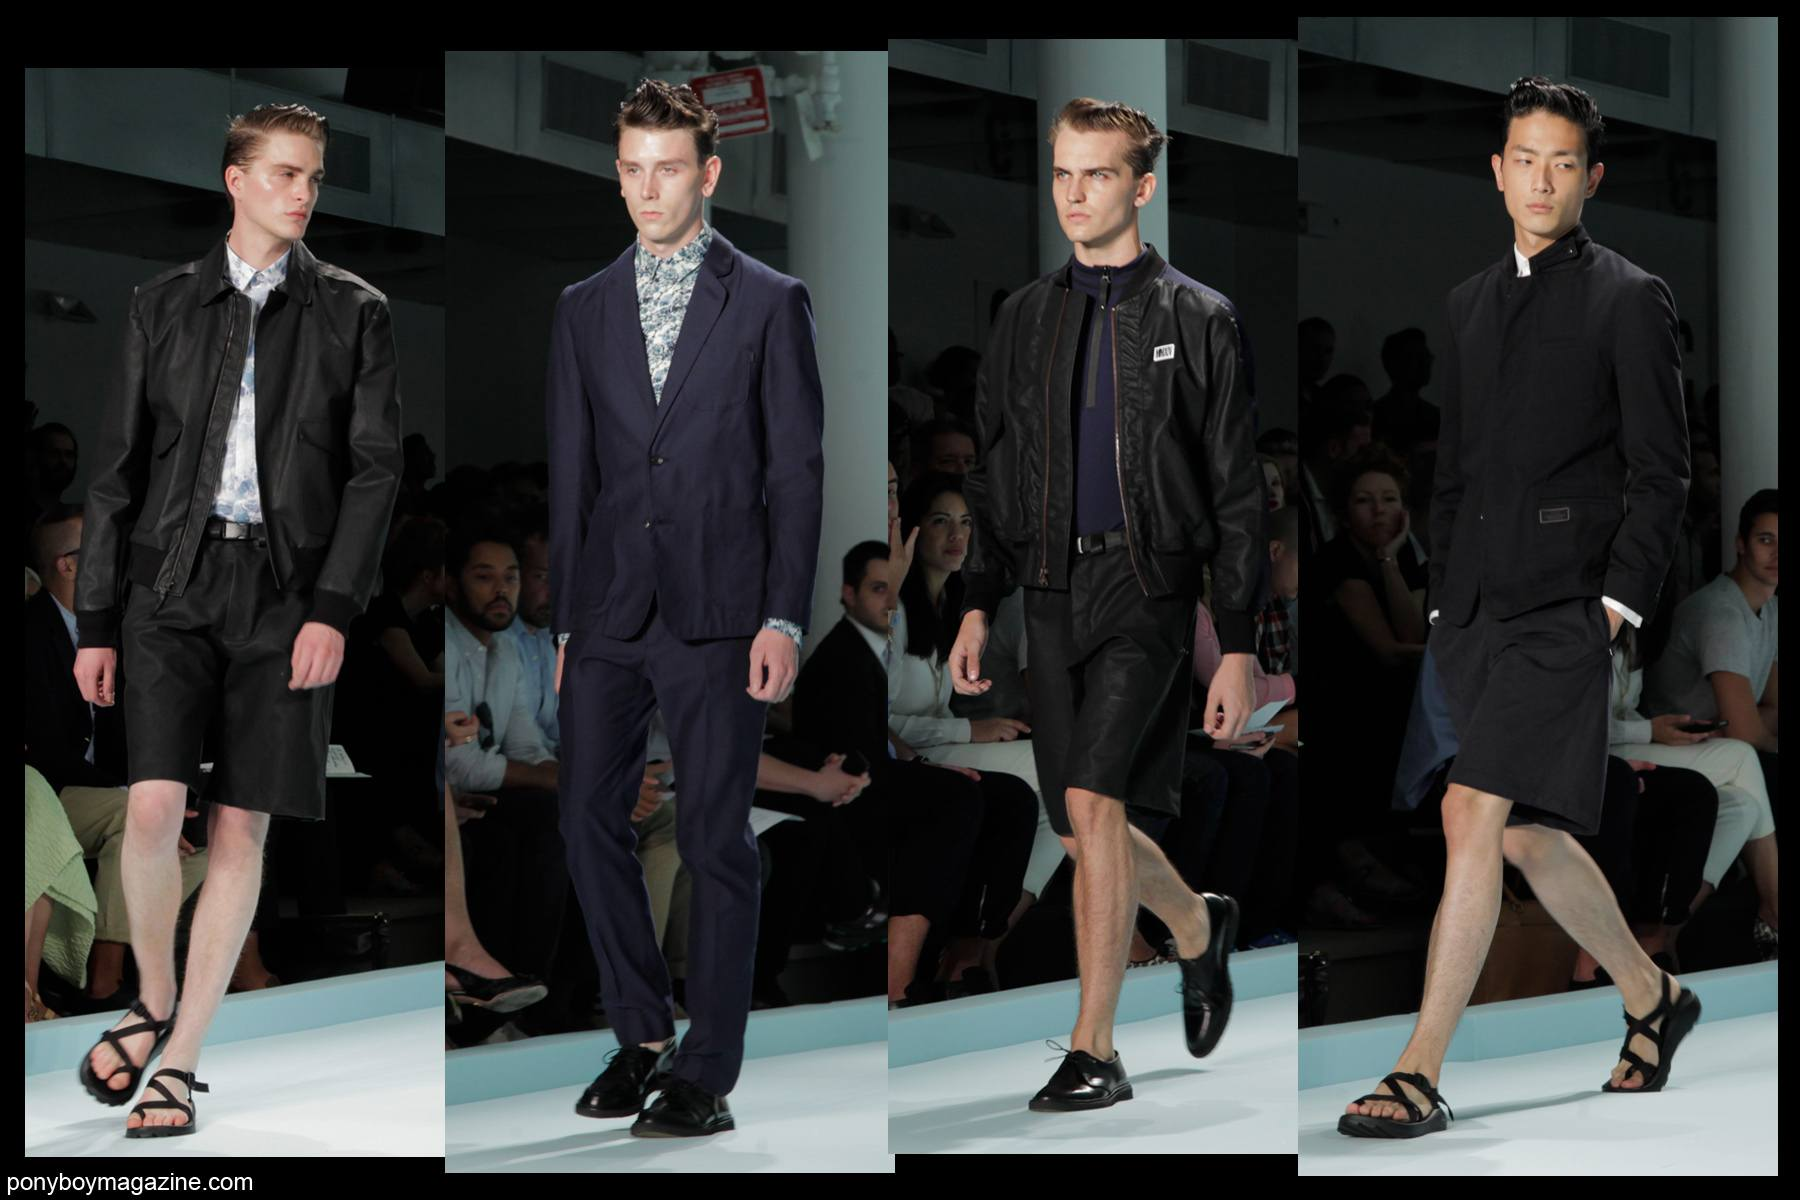 Models walk the runway at the Patrik Ervell SS2014 show, photographed by Alexander Thompson for Ponyboy Magazine.